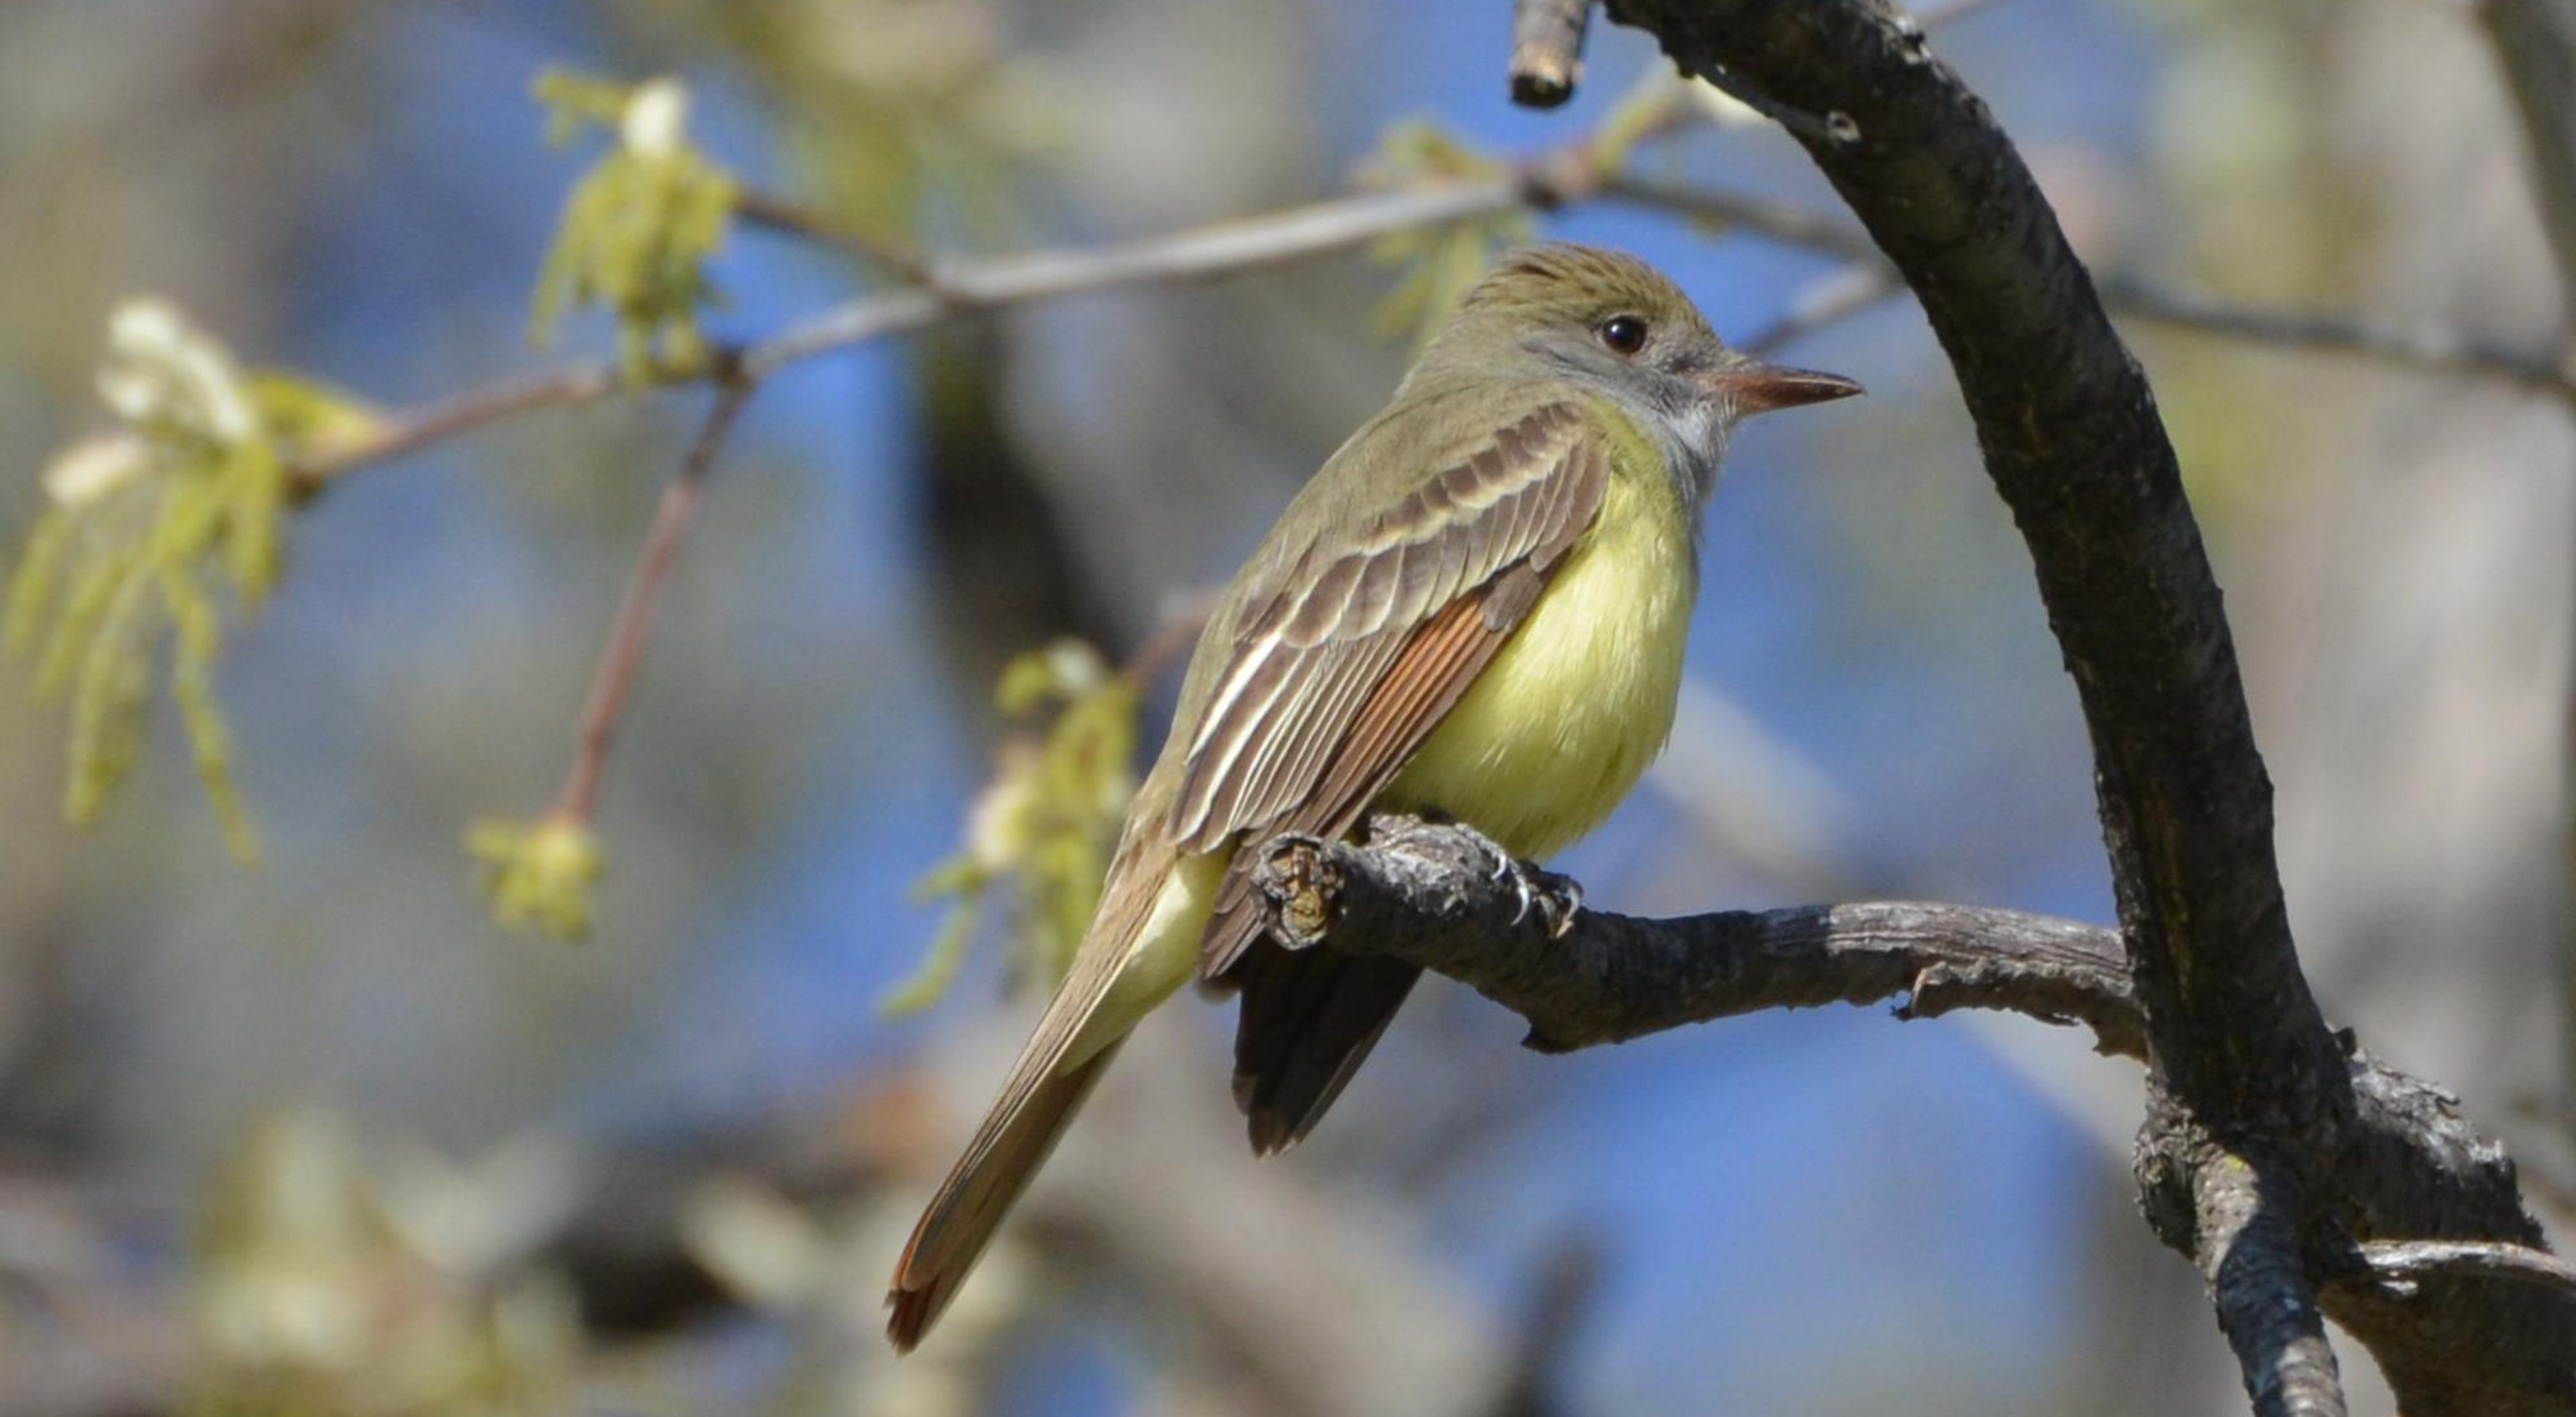 A great crested flycatcher sits on a branch